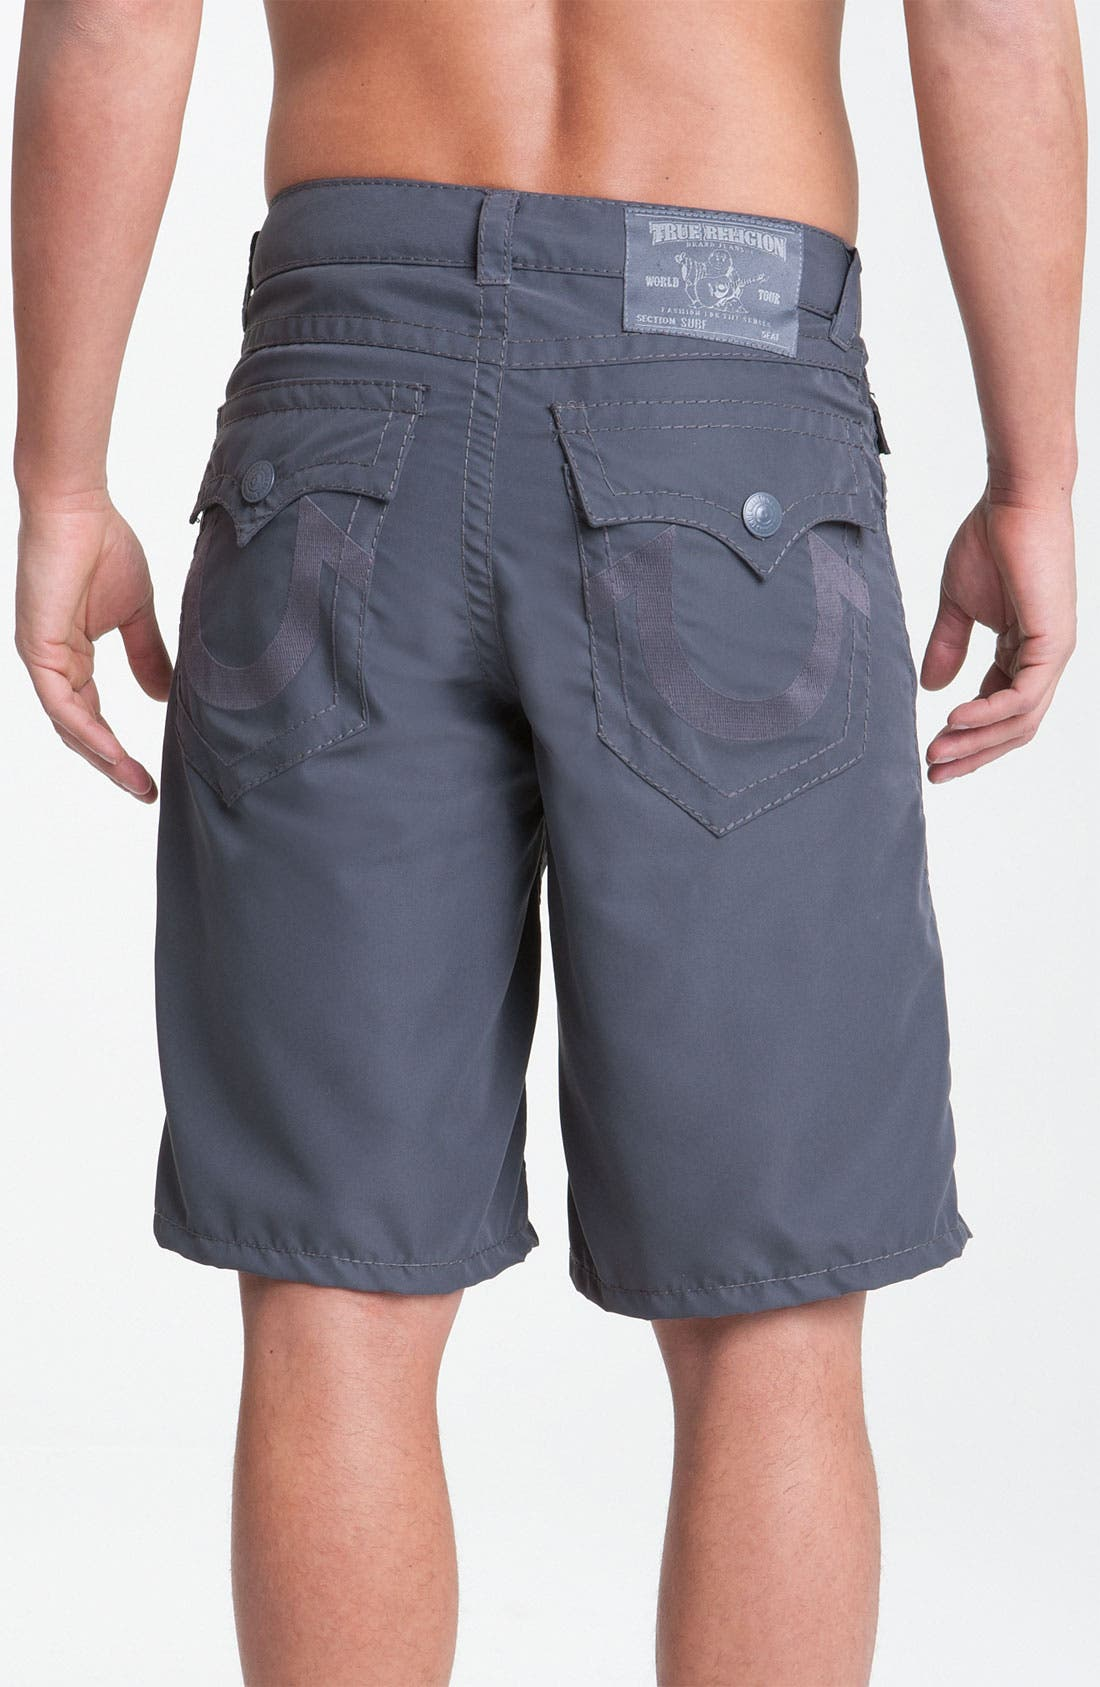 'PCH' Board Shorts,                             Main thumbnail 1, color,                             Charcoal